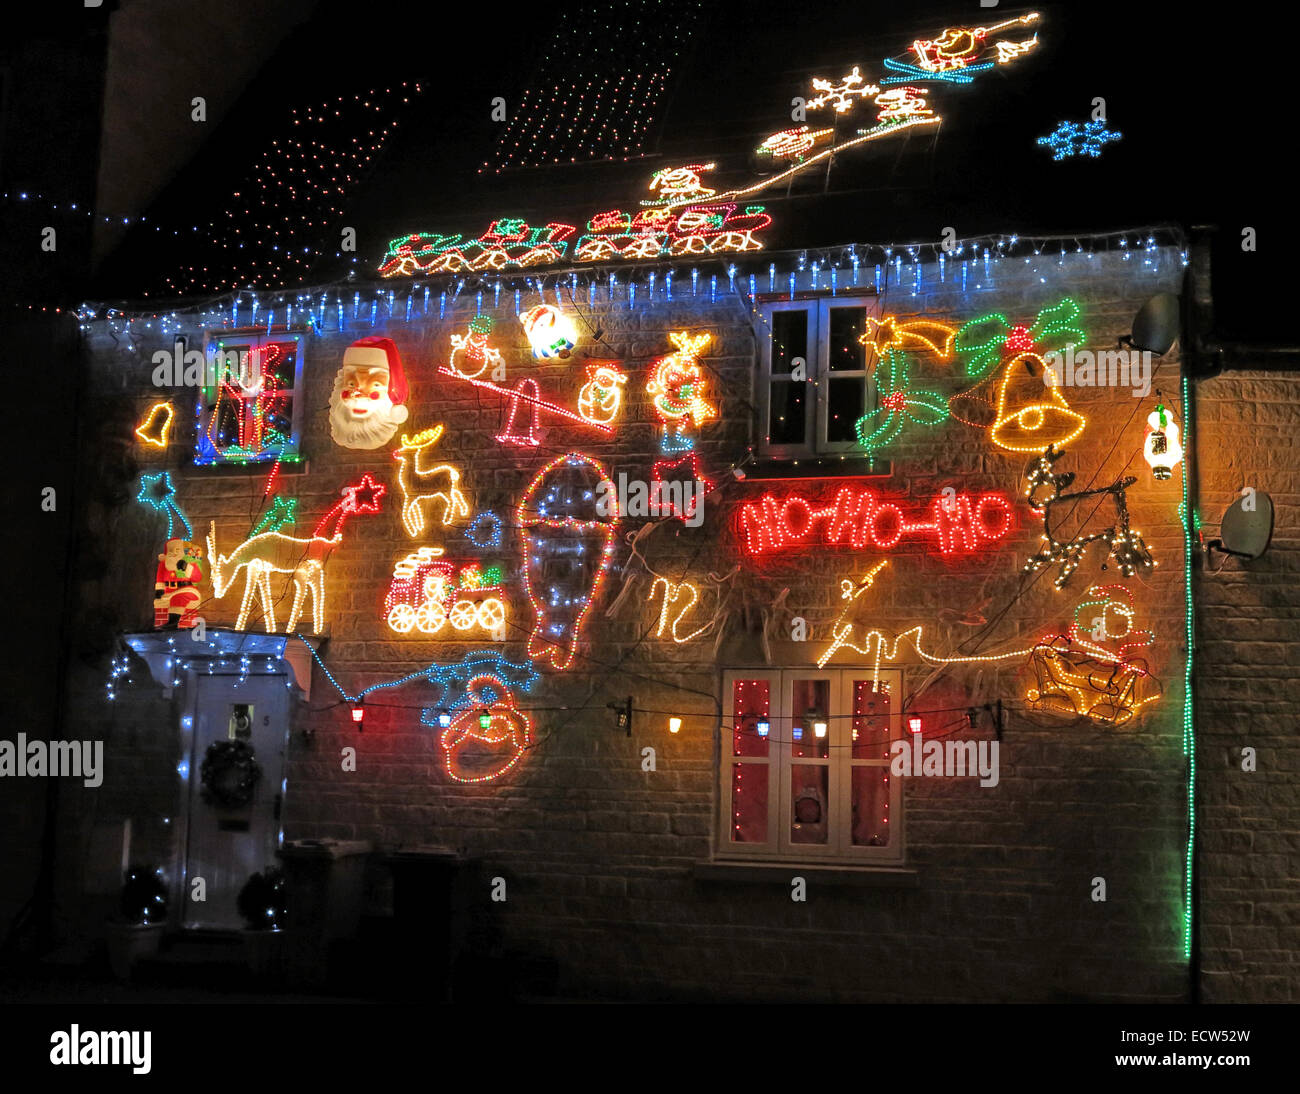 outside,exterior,Xmas,decorations,decoration,illuminated,illuminations,Santa,Sleigh,at,night,dusk,in,the,dark,bright,taste,chav,chavy,low,class,cheap,excess,wasted,power,electric,electricity,waste,low,efficiency,bah,humbug,love,hate,relationship,gaudiness,gaudy,outdoor,GoTonySmith England,Scotland,English,Scottish,welsh,bahhumbug,love-hate,artful,DIYer,DIY,ioBridge,IO-204,module,an,Arduino,Wave,Kit,an,Arduino,Duemilanove,board,solid,state,relays,relay,in,Witney,Oxen